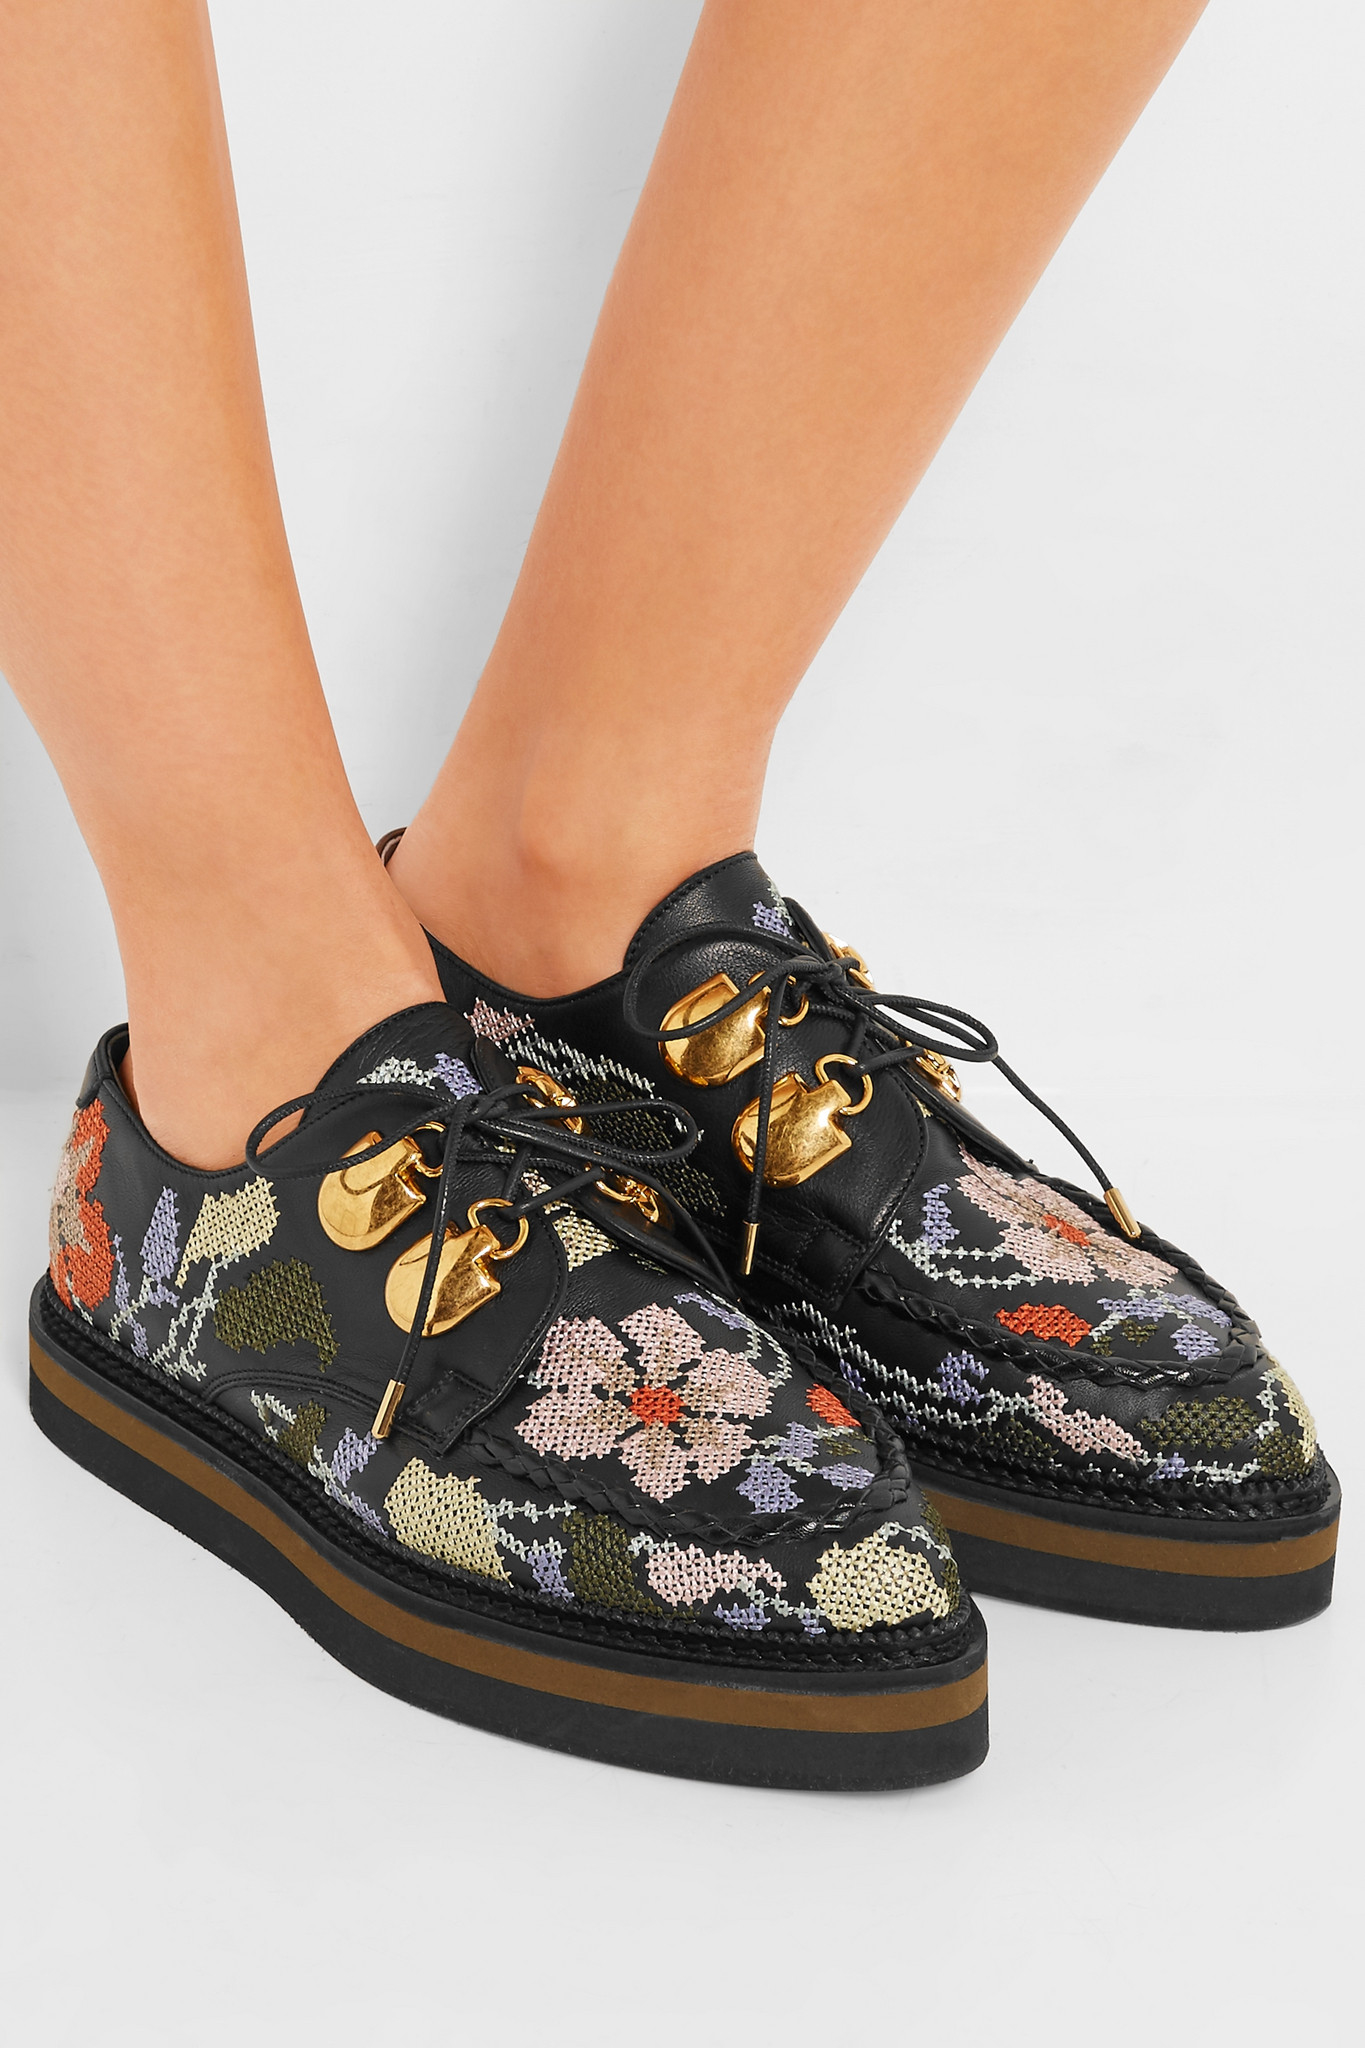 original cheap online shop offer for sale Alexander McQueen 2016 Leather Embroidered Oxfords 100% original cheap price 2HhfiqVXY